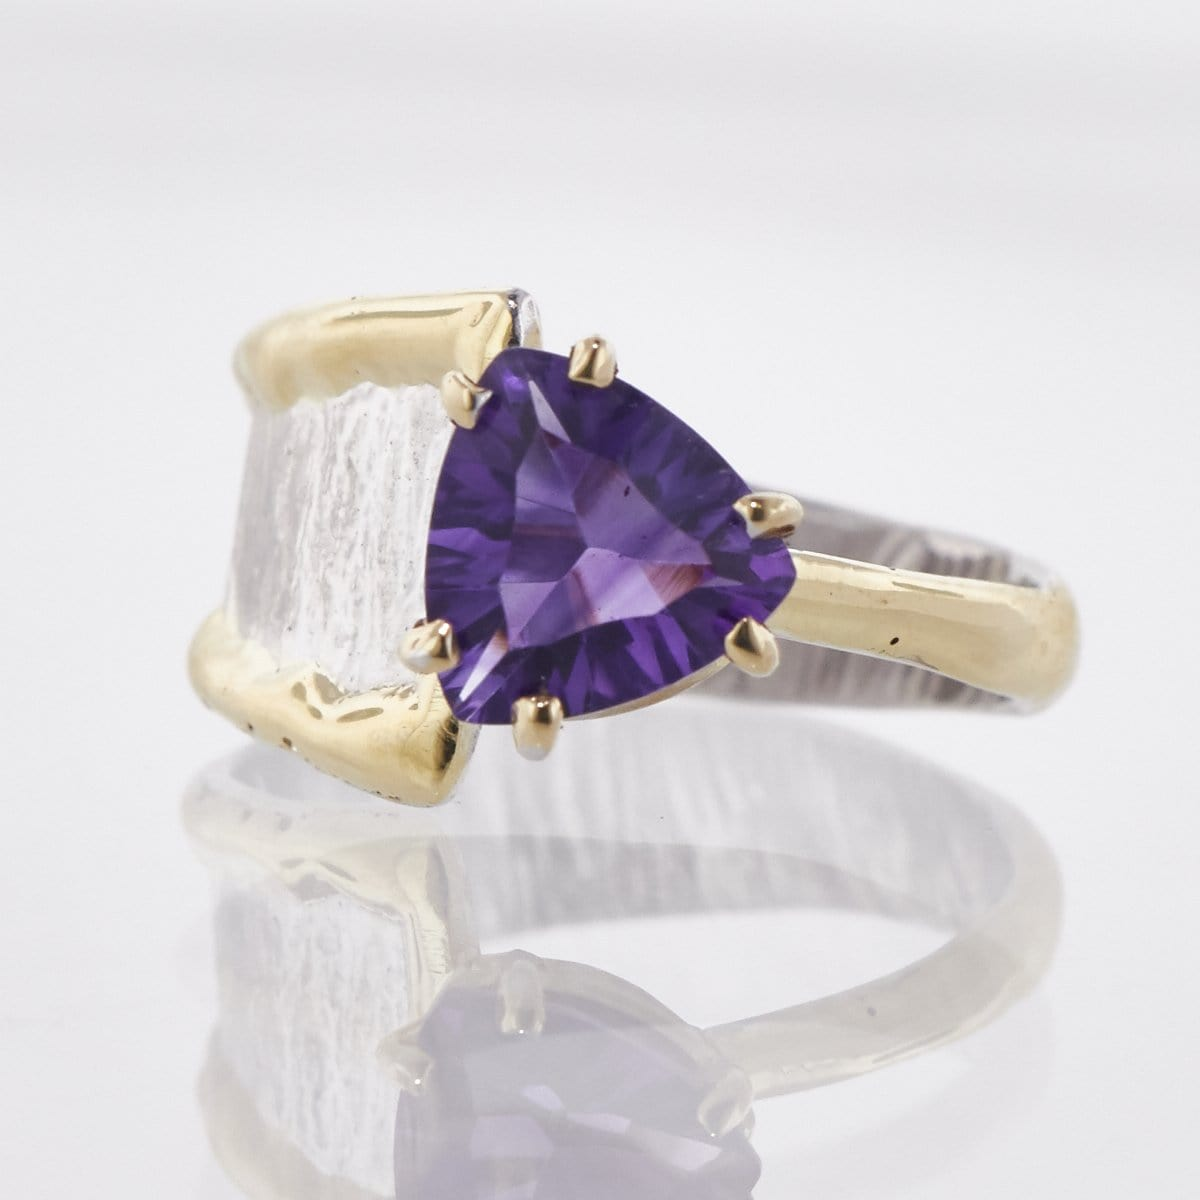 14K Gold & Crystalline Silver Amethyst Ring - 33268-Fusion Designs-Renee Taylor Gallery